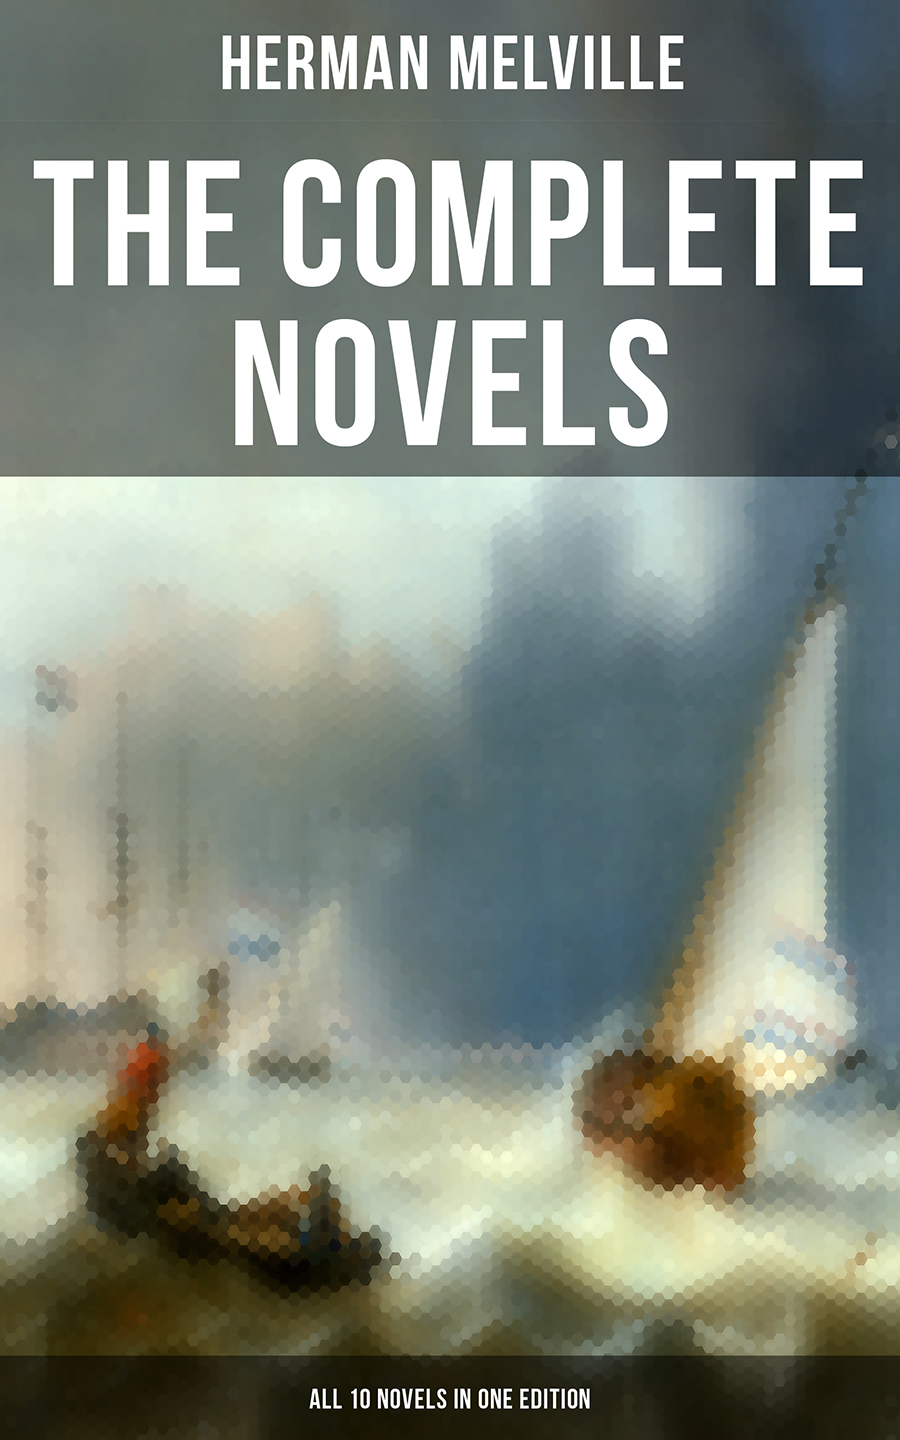 Herman Melville The Complete Novels of Herman Melville - All 10 Novels in One Edition